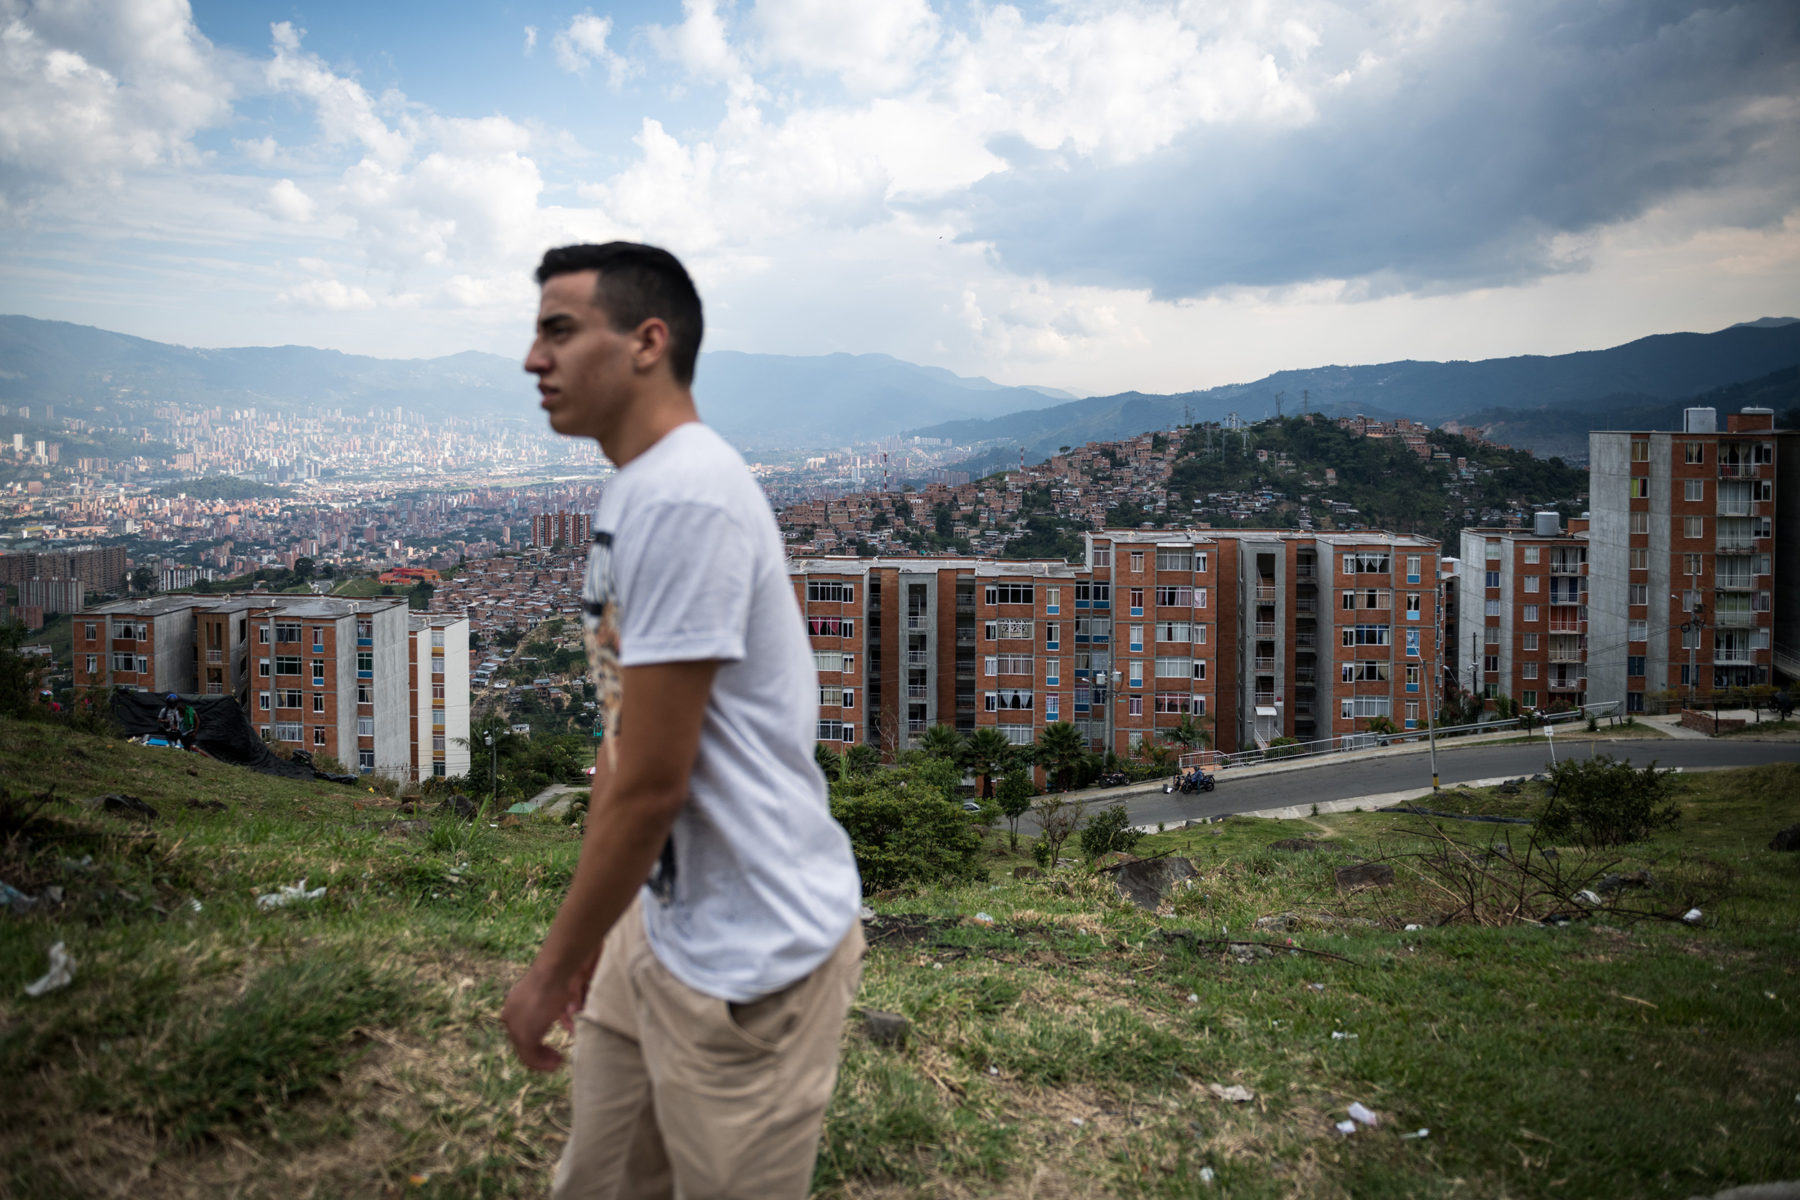 His father had wanted to become a professional cyclist, but when his wife became pregnant, he had to support the family. Now he supports his son in his passion for sport. Daniel lives in one of these skyscrapers in the Western Hills in the Comuna 7.